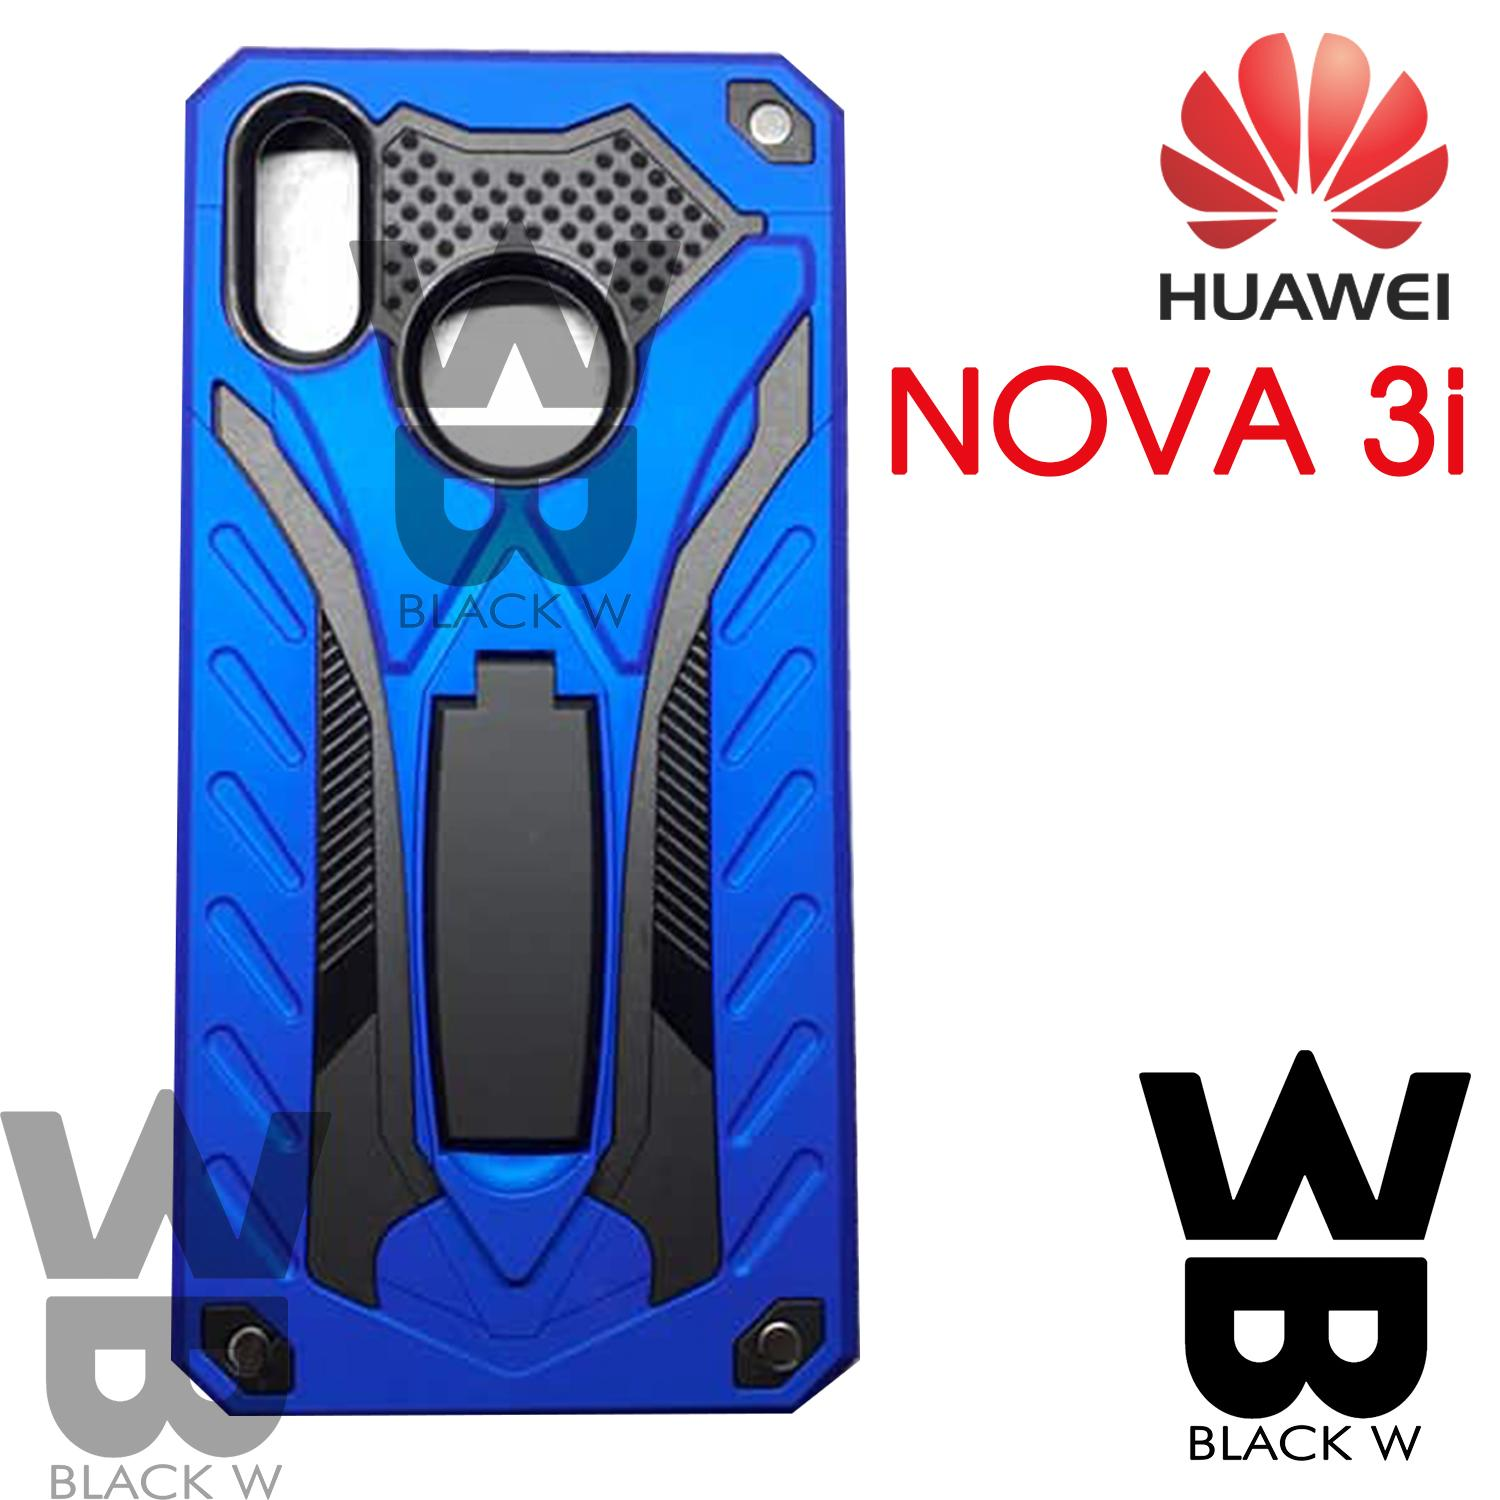 reputable site c9400 5e12f Huawei Phone Cases Philippines - Huawei Cellphone Cases for sale ...